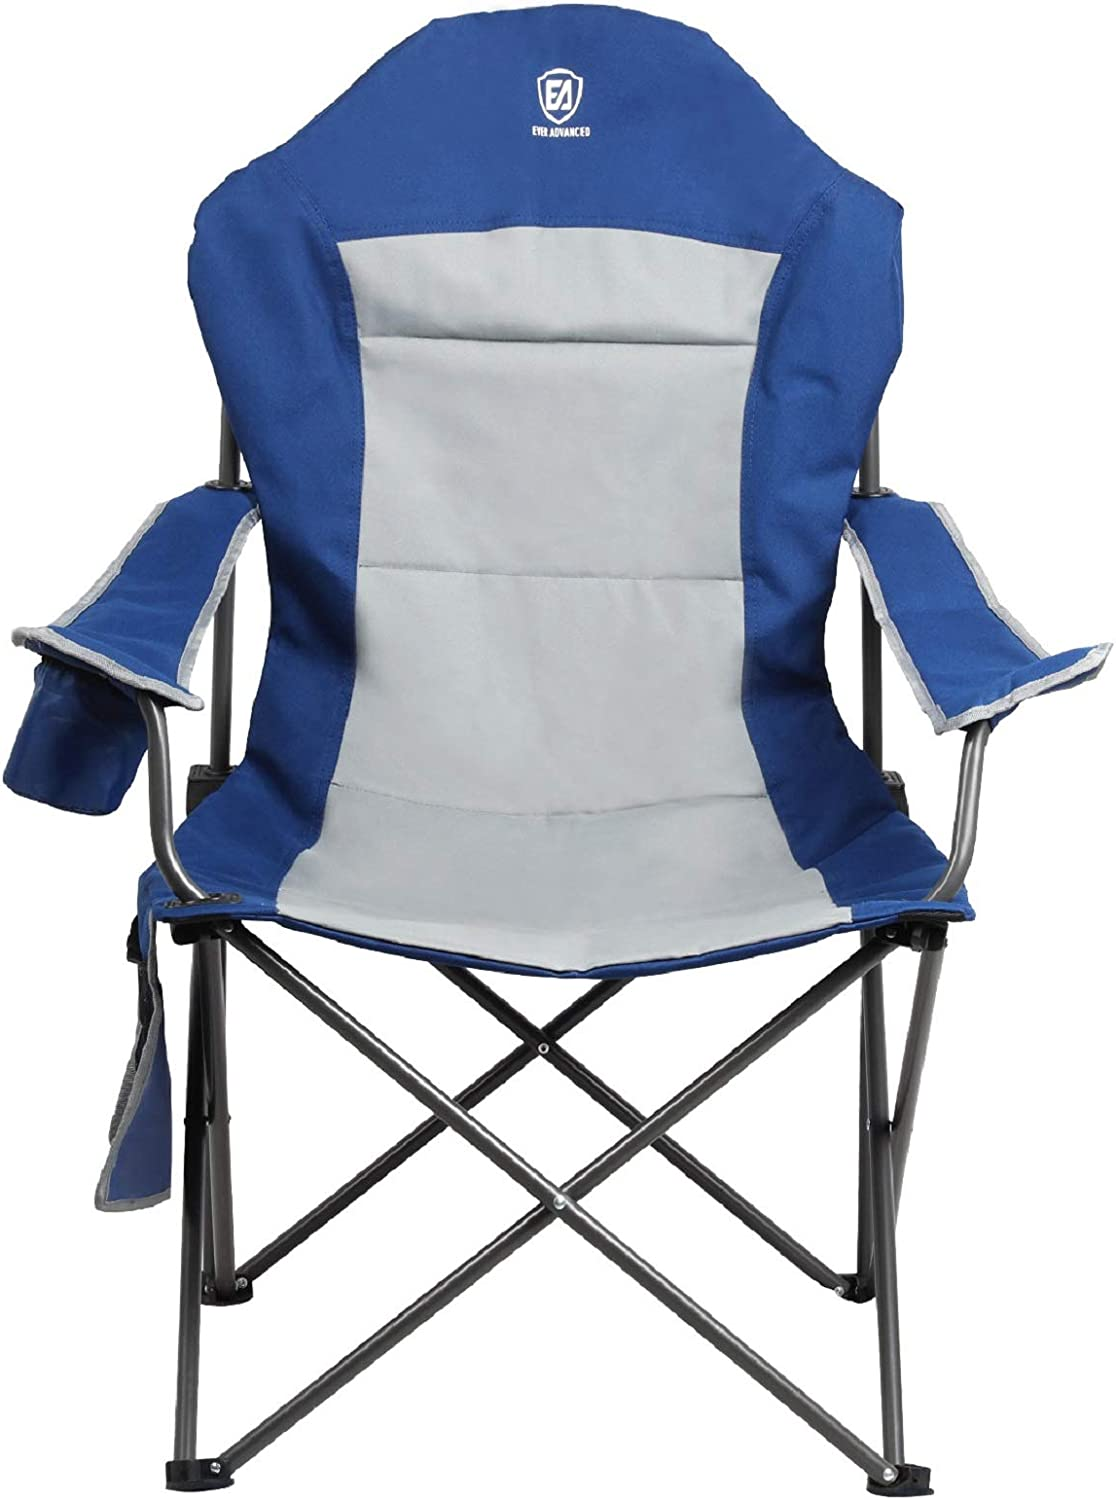 EVER ADVANCED Folding Camping Chairs, Oversize Portable Padded Camp Chair with Carry Bag, Heavy Duty Frame, Adjustable Armrest & Cup Holder for Outdoor, Hiking, Picnic, Support 300lbs